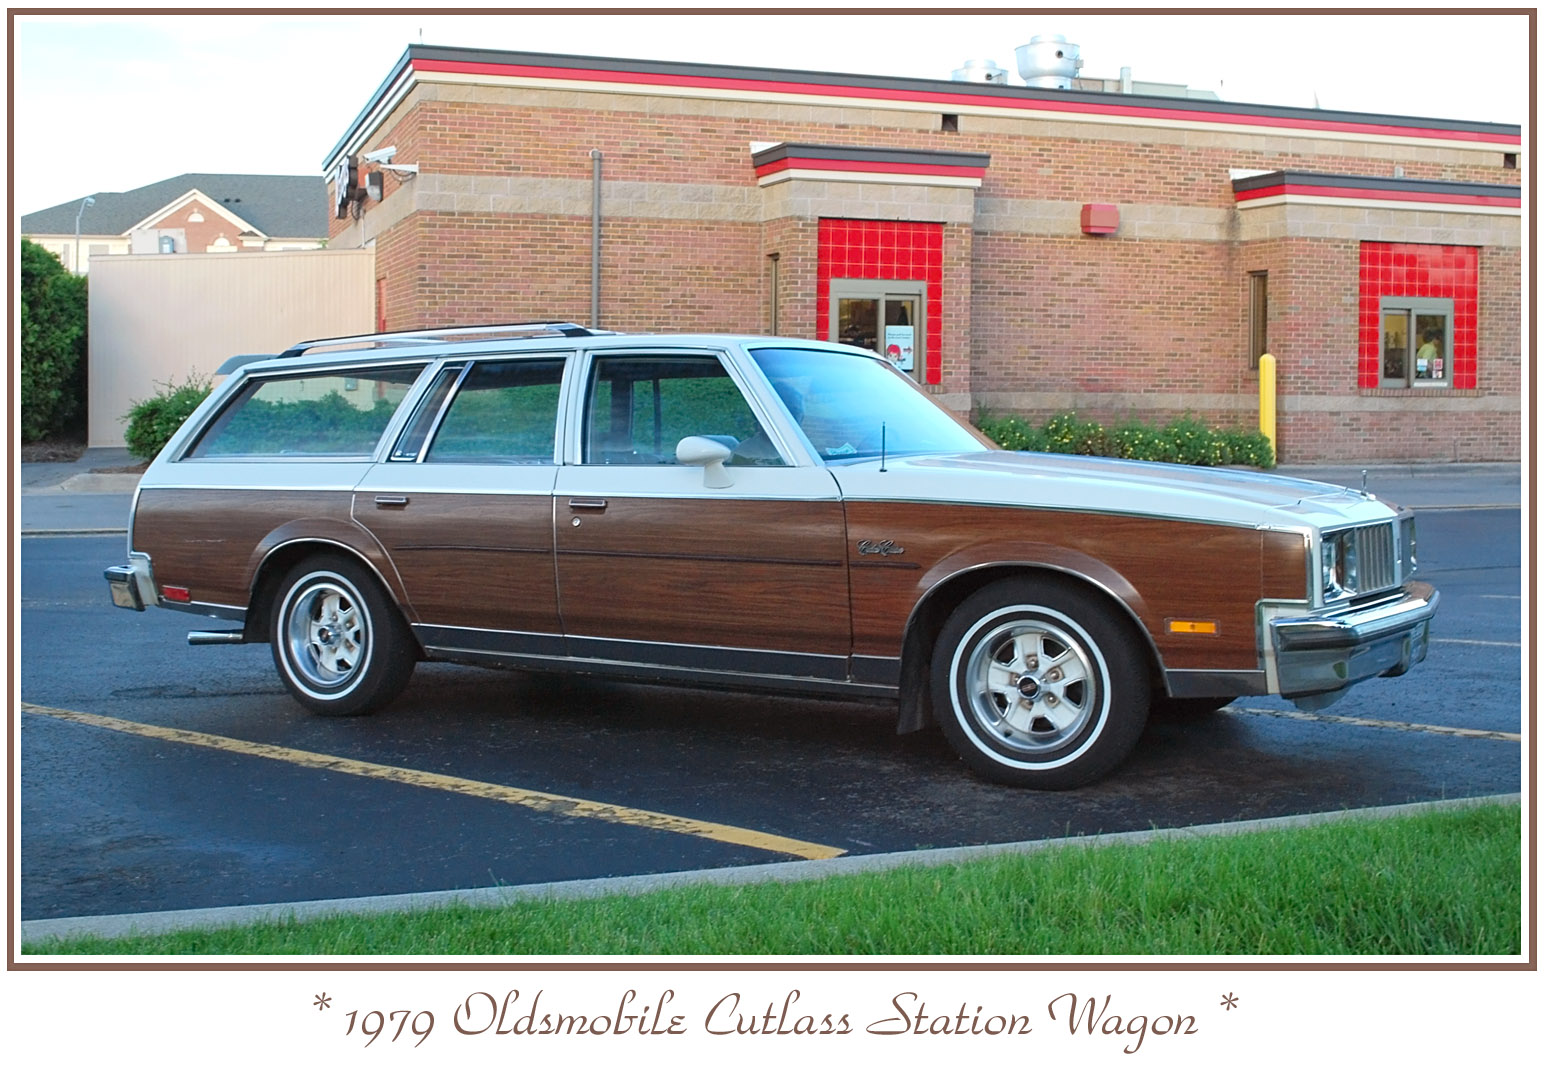 1979 Oldsmobile Cutlass Station Wagon Images Pictures